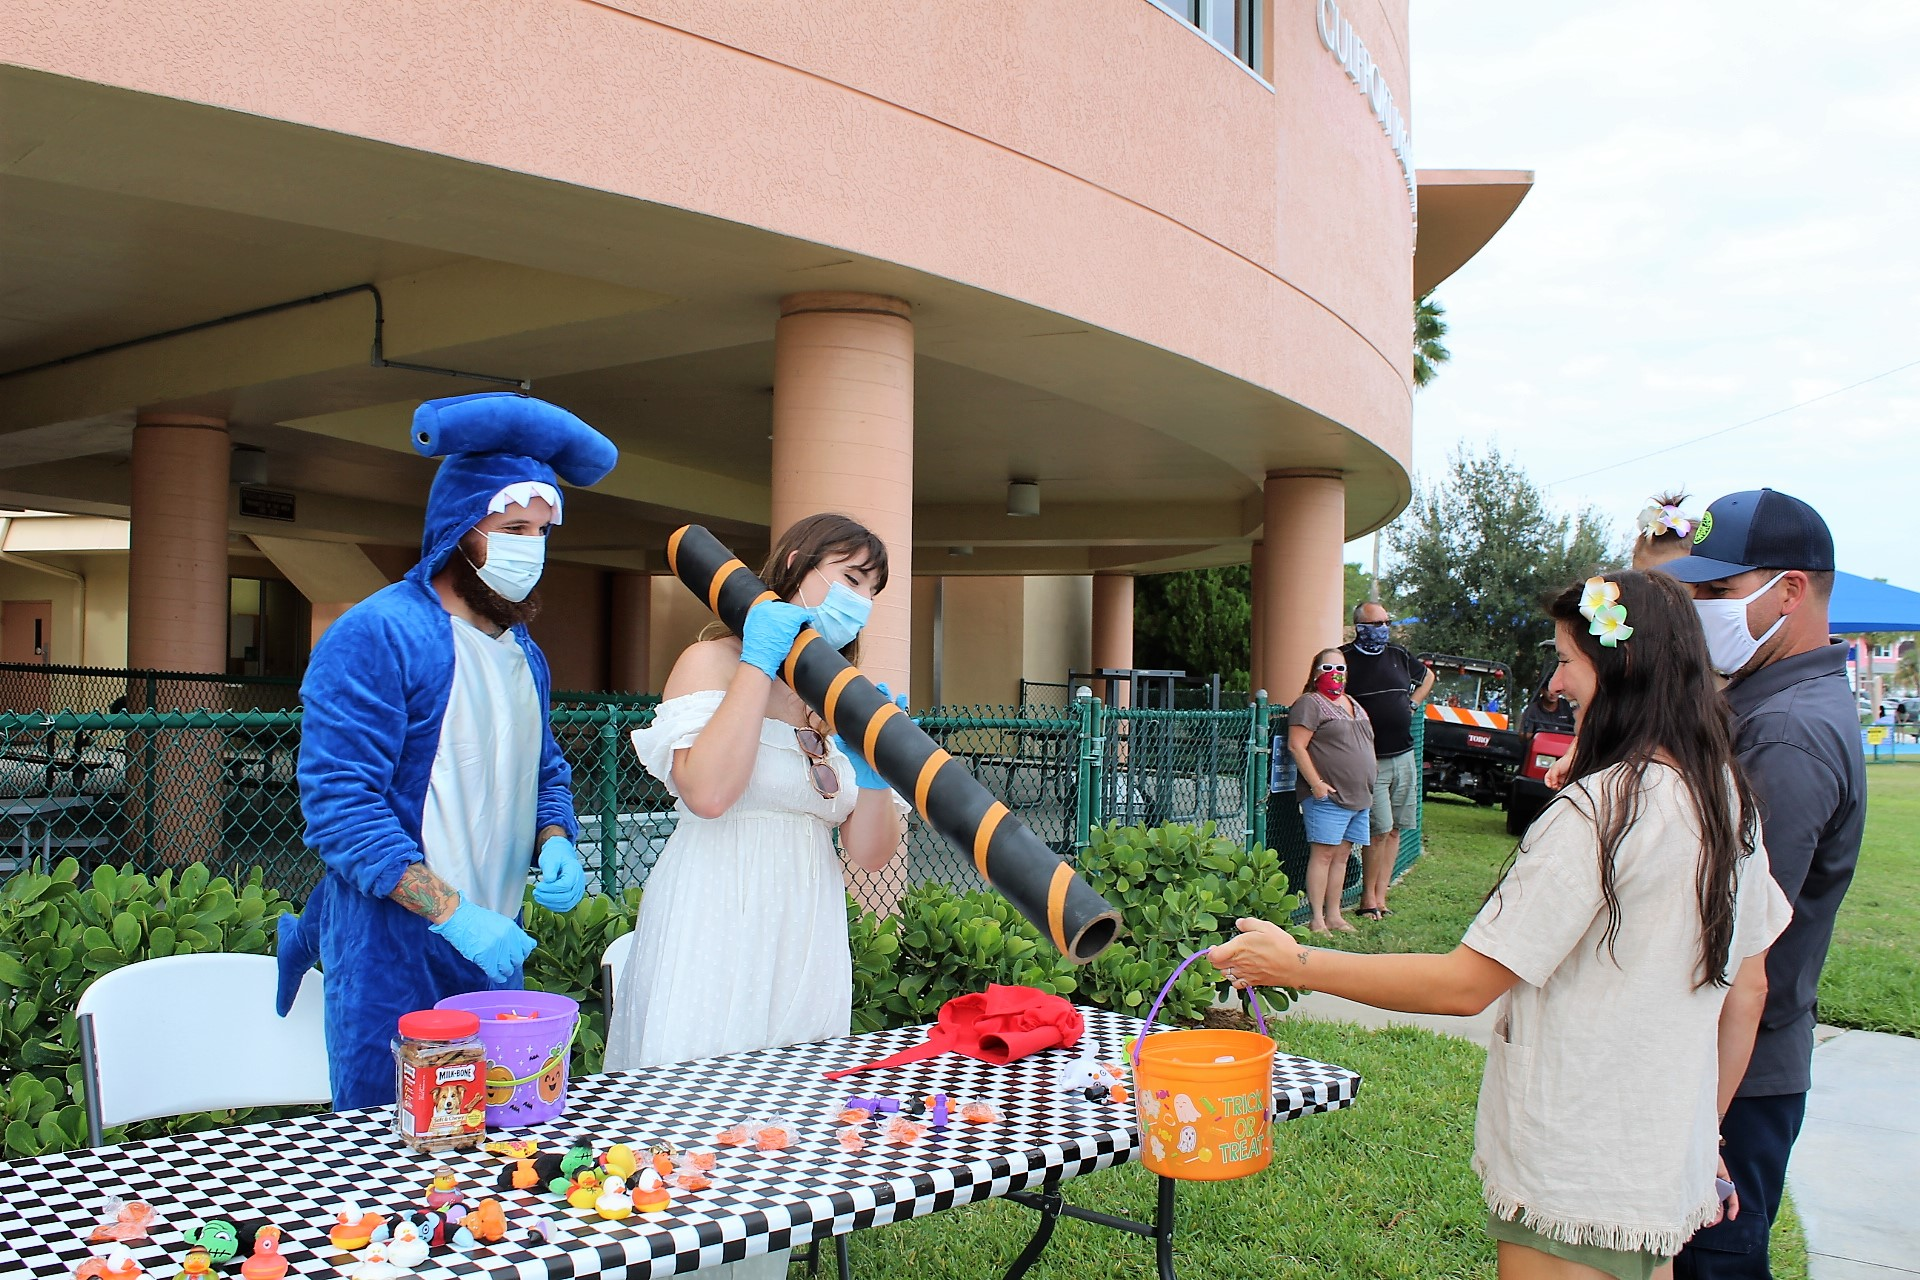 A couple in Halloween costumes puts out a chute for candy at an outdoor event.